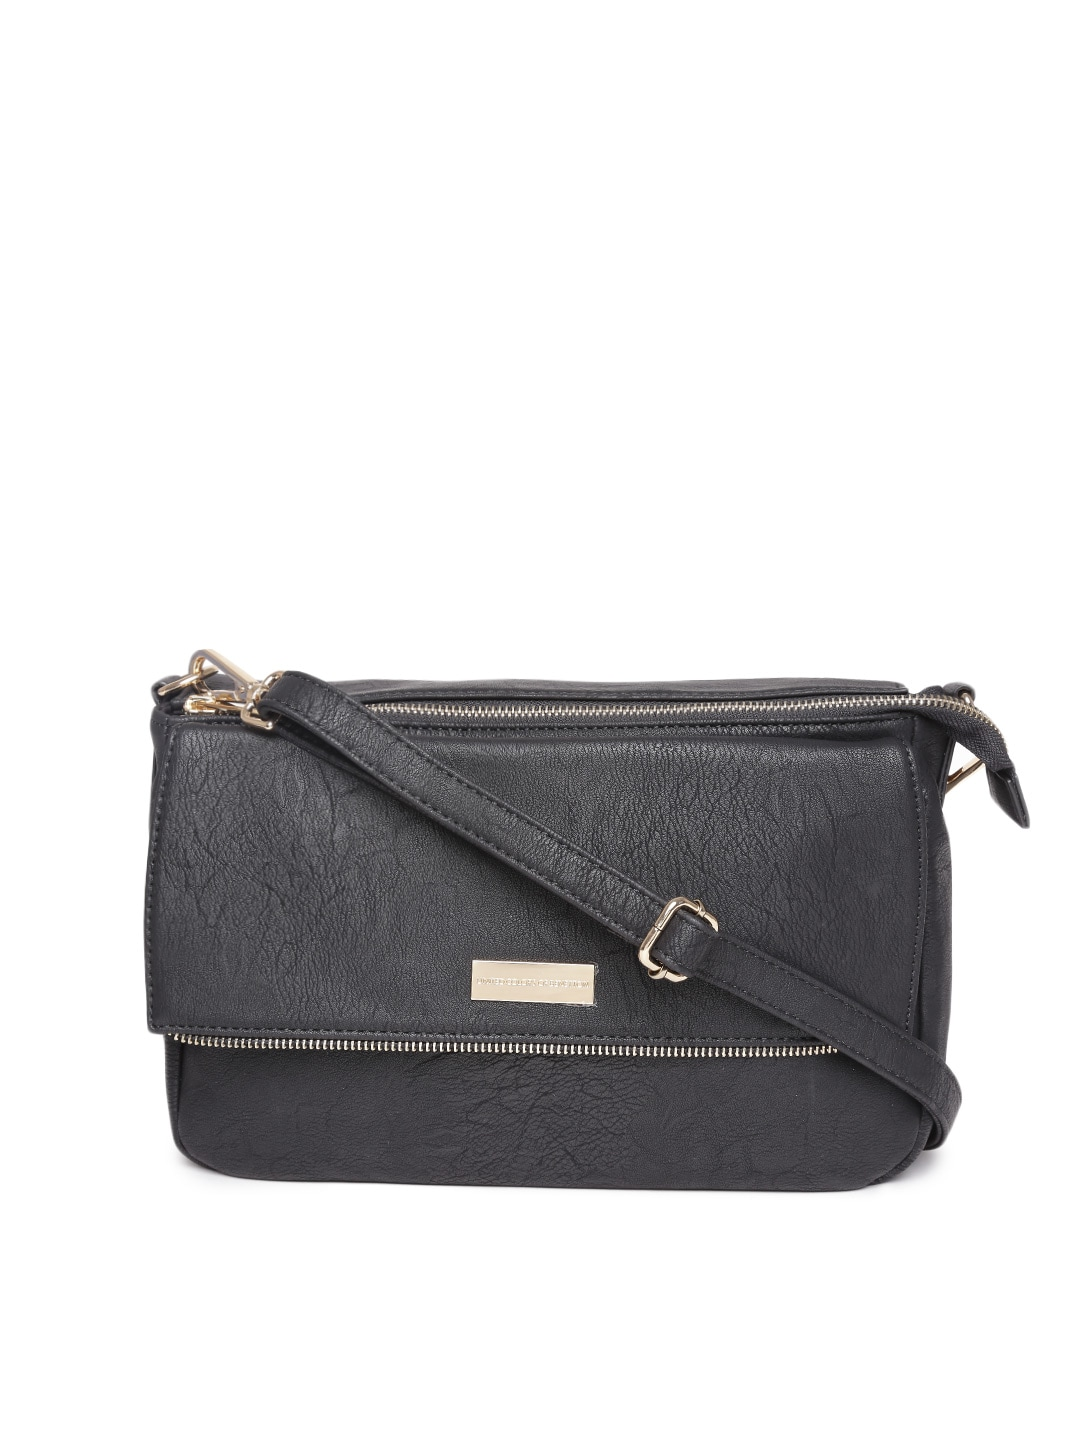 United colors of benetton 15a6pu1d9134i-100 Black Textured Sling Bag- Price  in India 3eb59e02bb